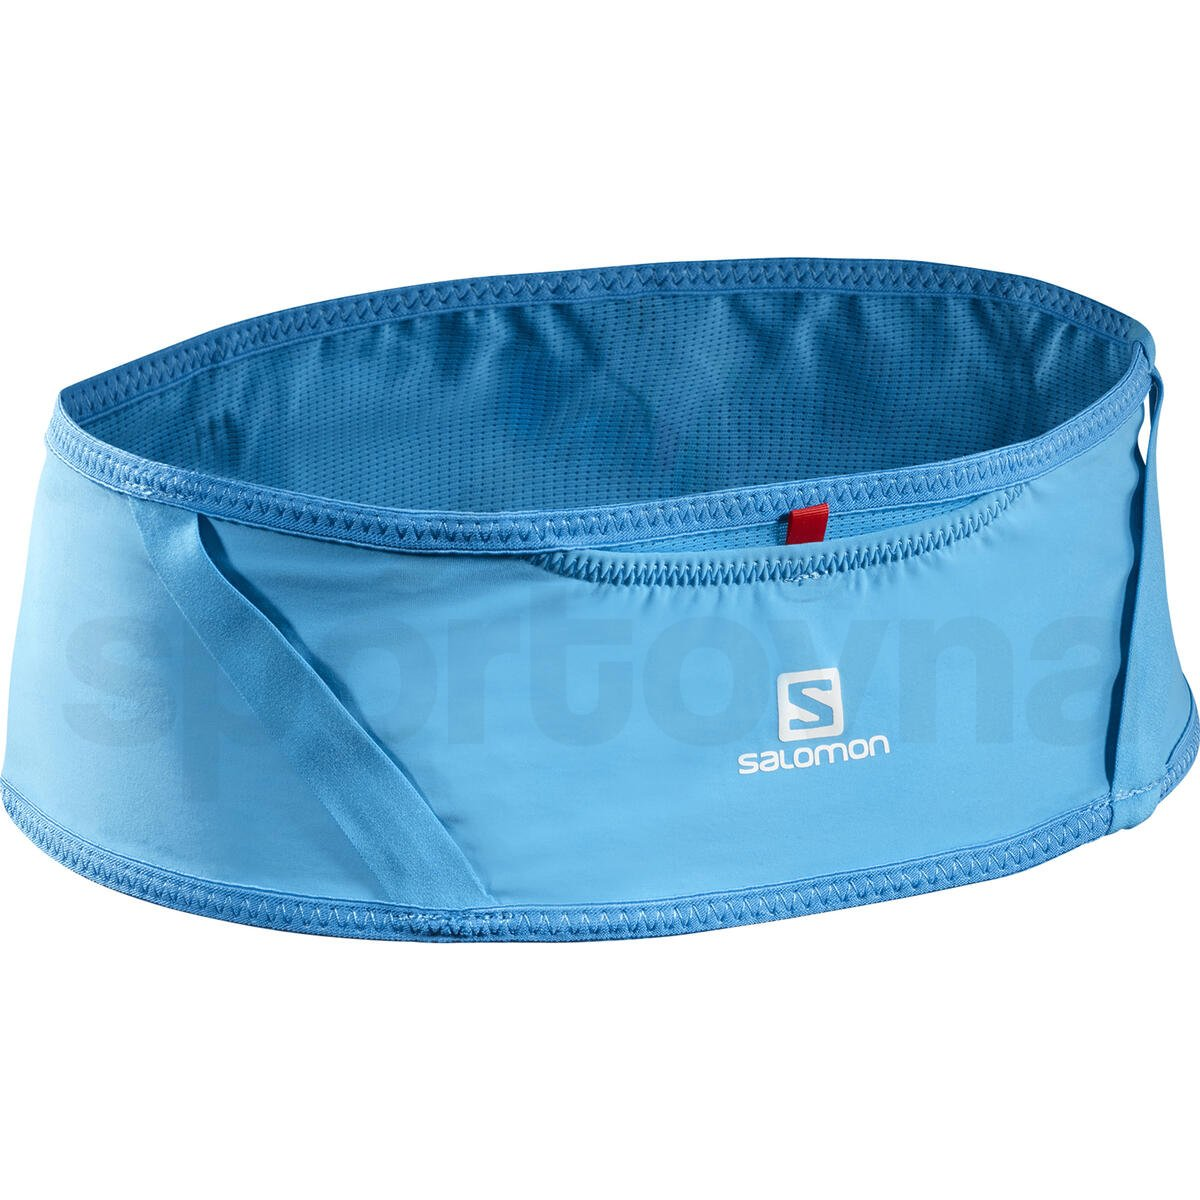 LC1304200_0_GHO_PULSE BELT-VIVID BLUE.jpg.cq5dam.web.1200.1200